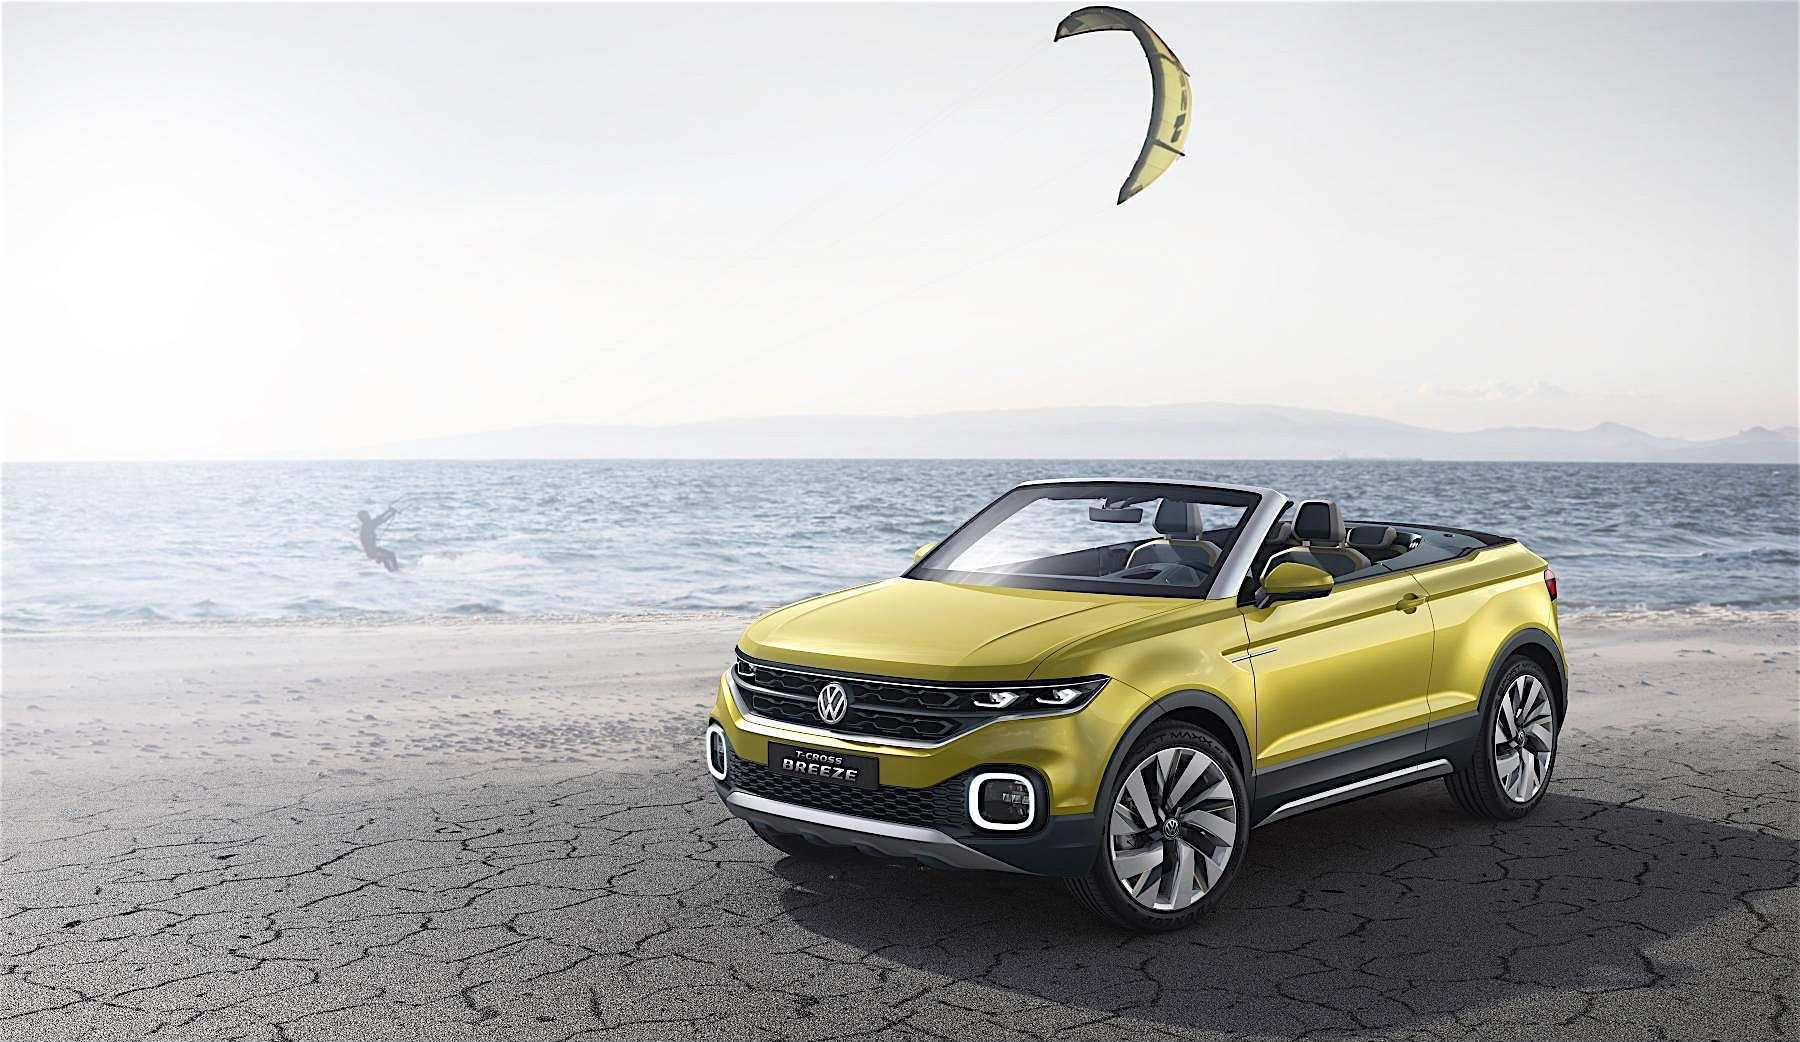 91 New VW New Concepts 2020 Exterior with VW New Concepts 2020